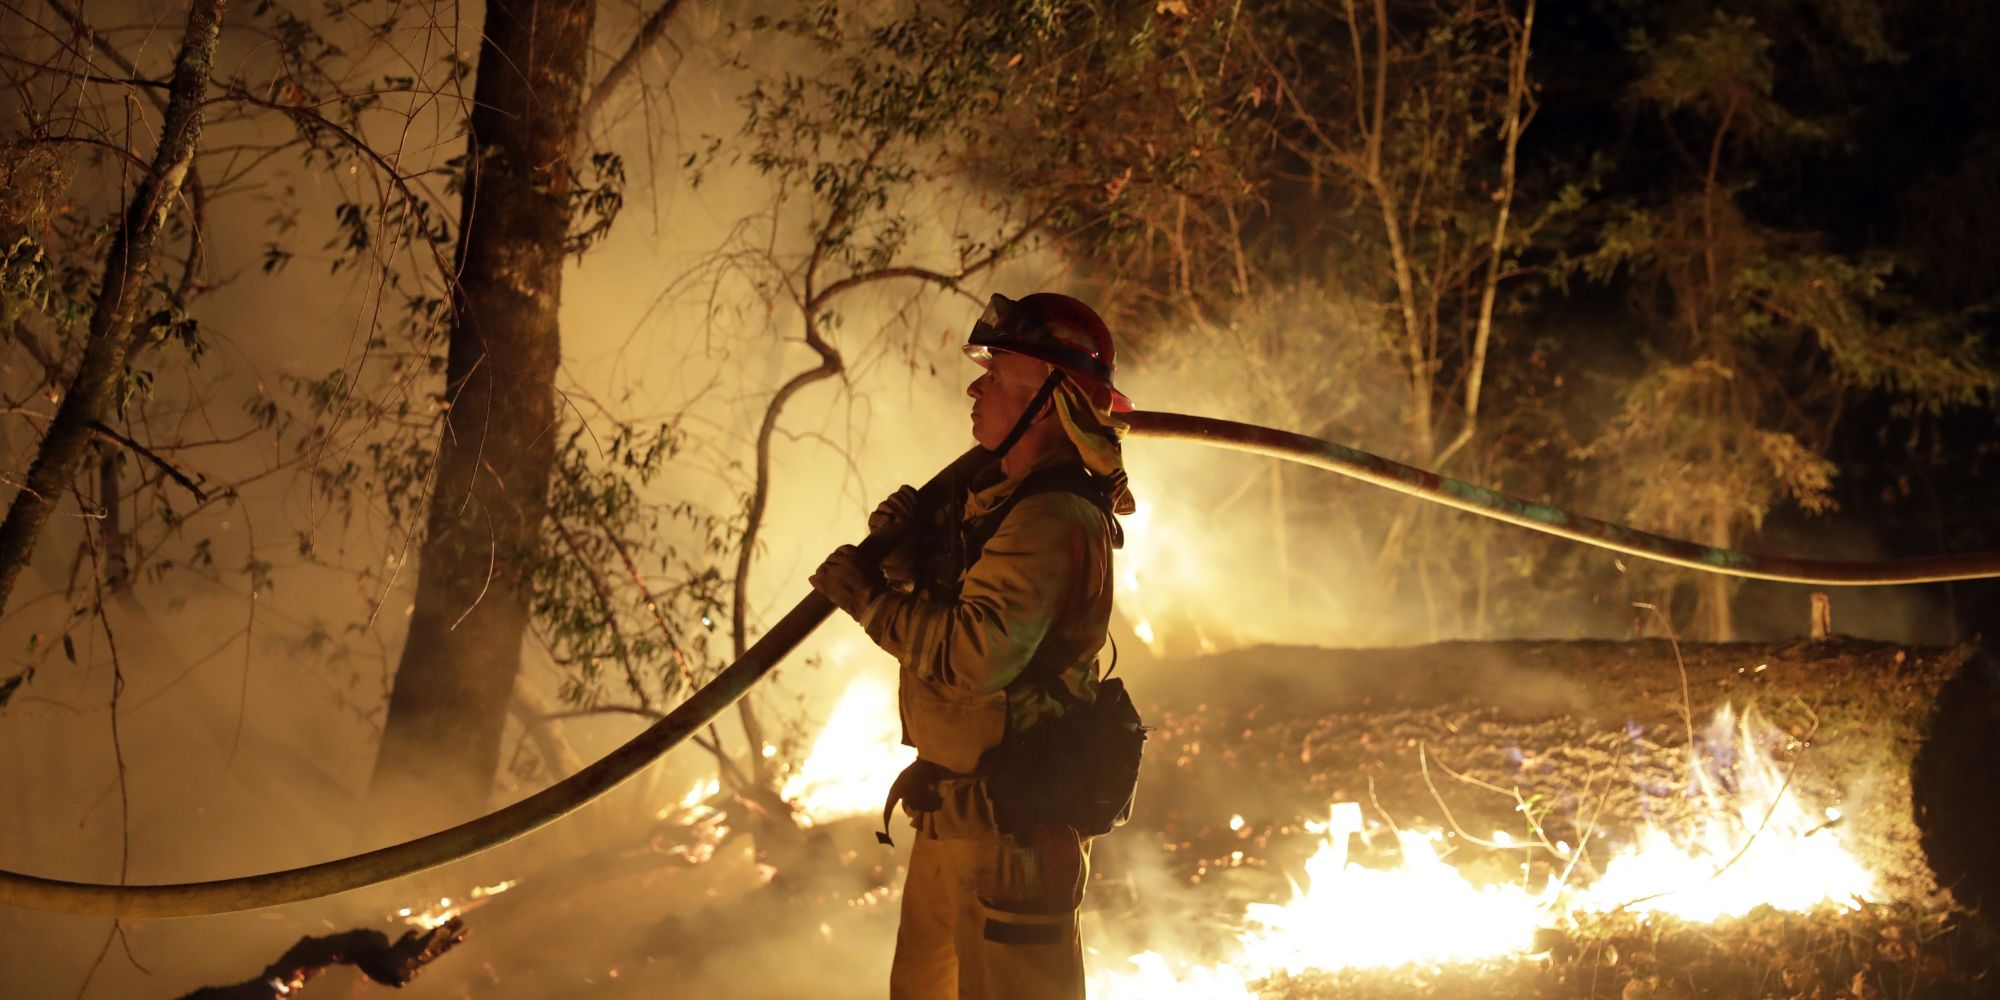 Founders Battle For Their Indie Beauty Brands As Wildfires Ravage Acre After Acre In Northern California